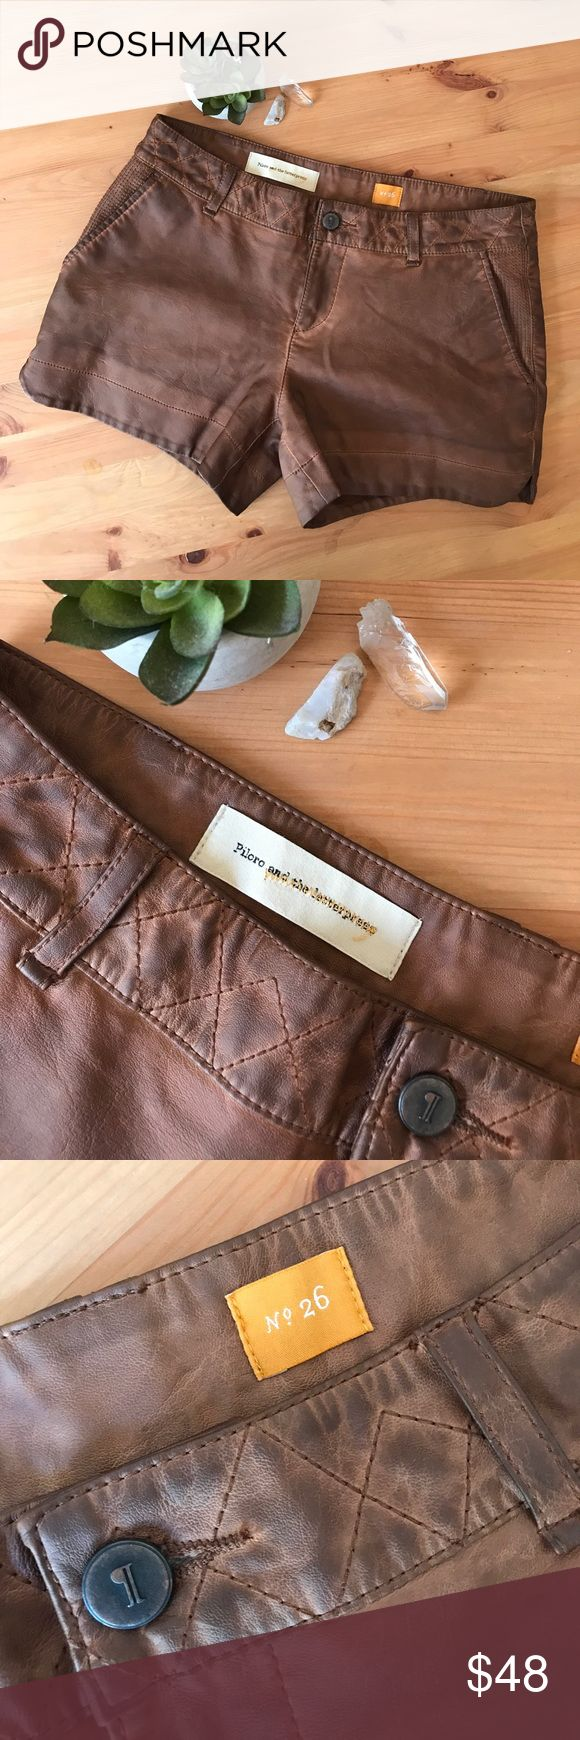 Anthropology Pilcro Brown Vegan Leather Shorts 26 Worn once. 10 out of 10 condition. No rips stains tears or flaws. Thick vegan leather (feels real) sturdy and great quality. Size 26. Anthropologie Shorts